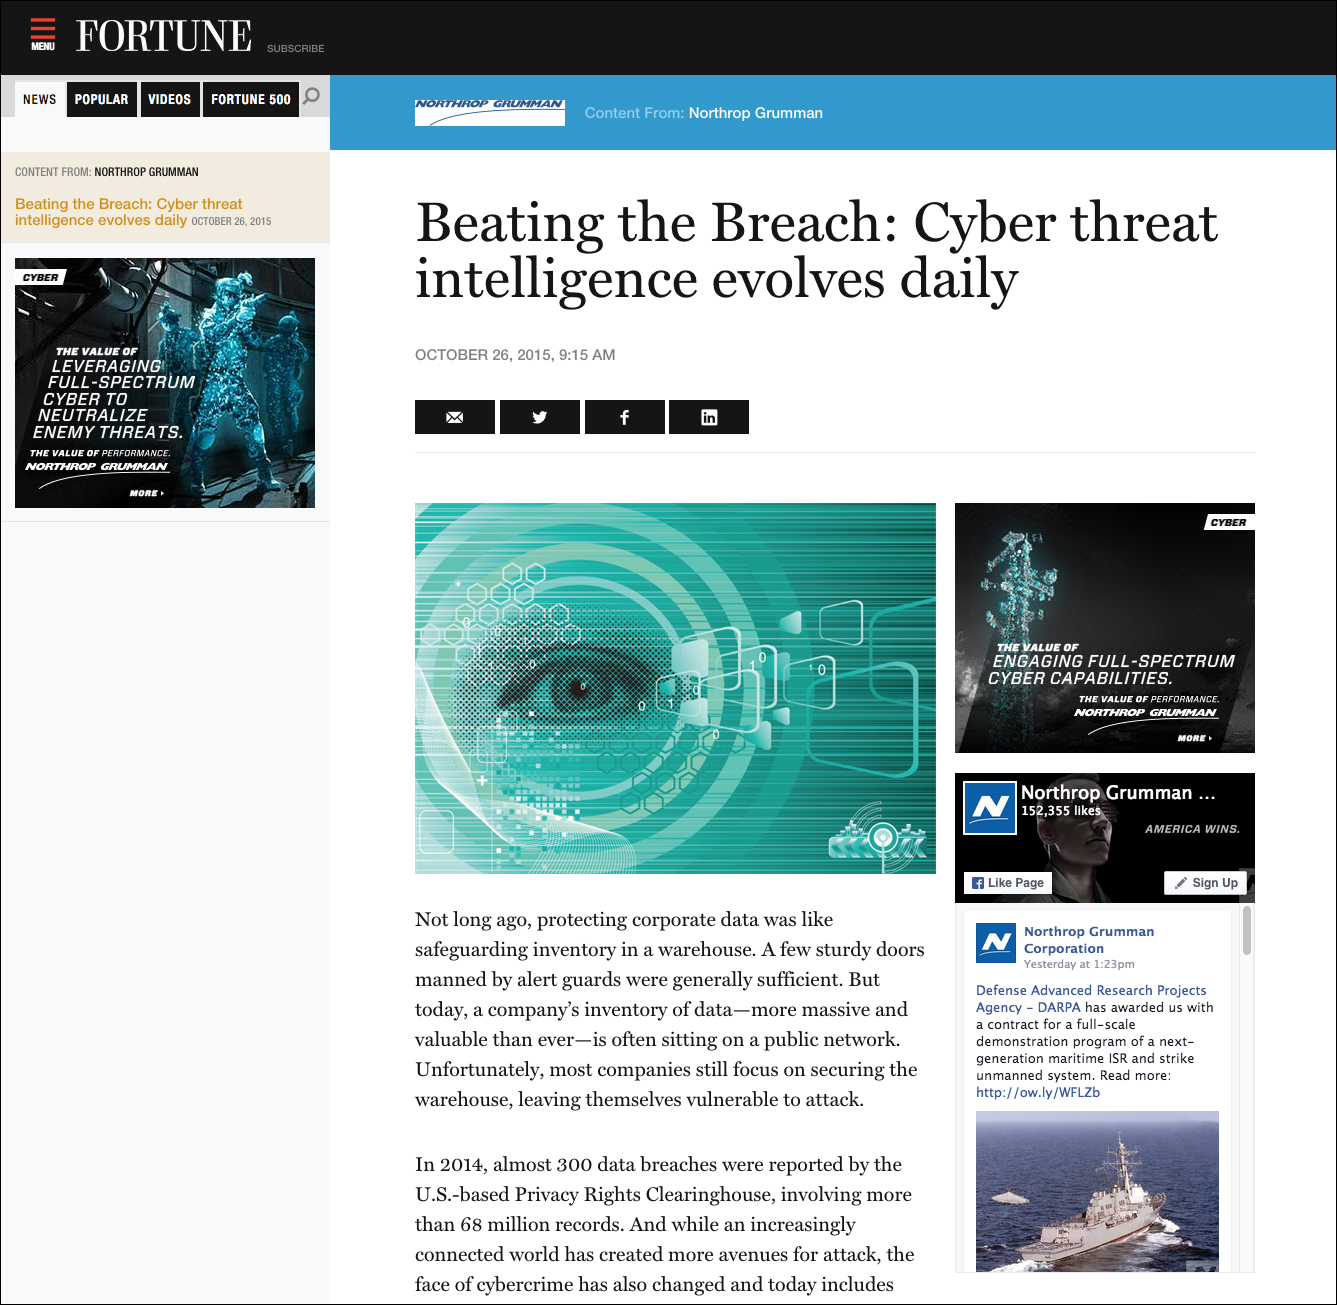 Beating the Breach: Cyber threat intelligence evolves daily